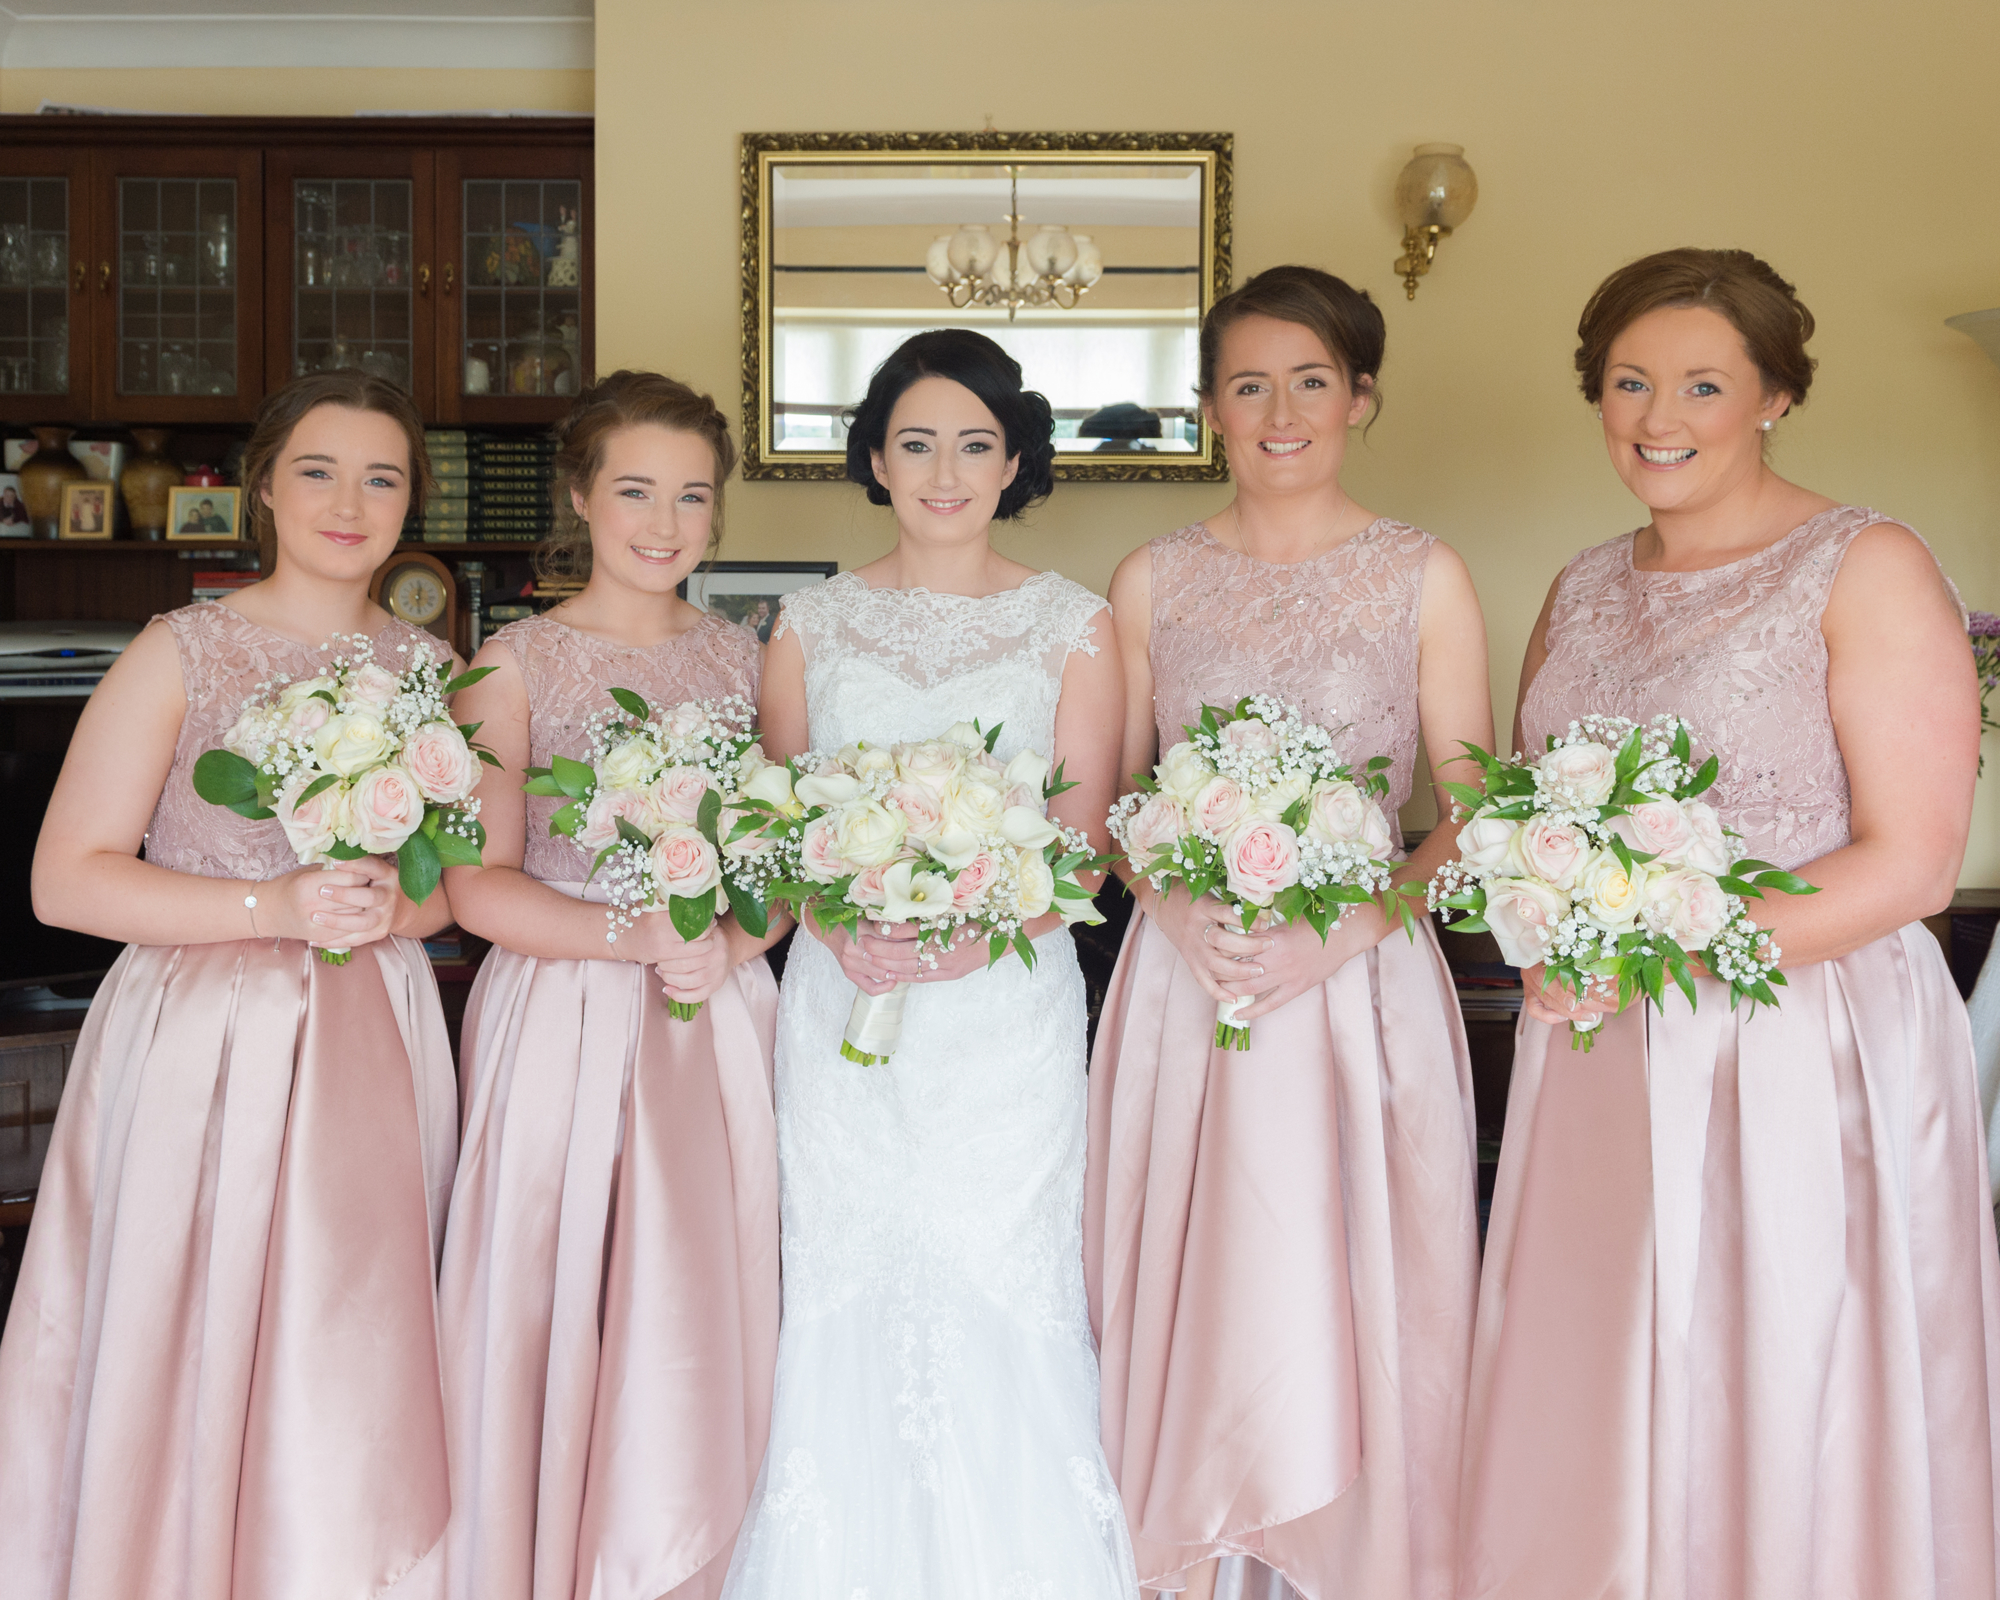 Michael Gill Photography Ramelton Wedding Beech HIll 02.JPG